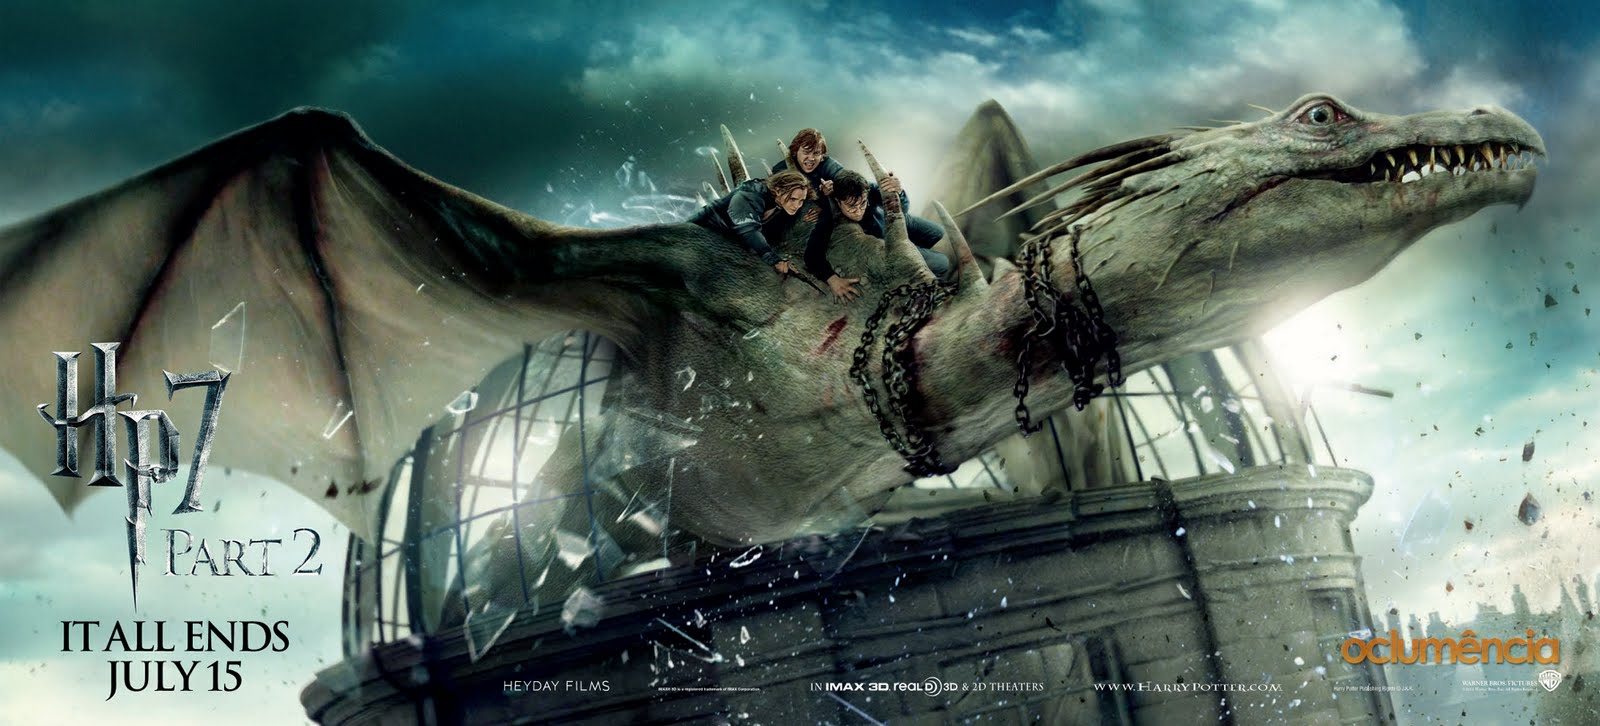 Dragon Harry Potter And The Deathly Hallows Part 2 Wallpaper